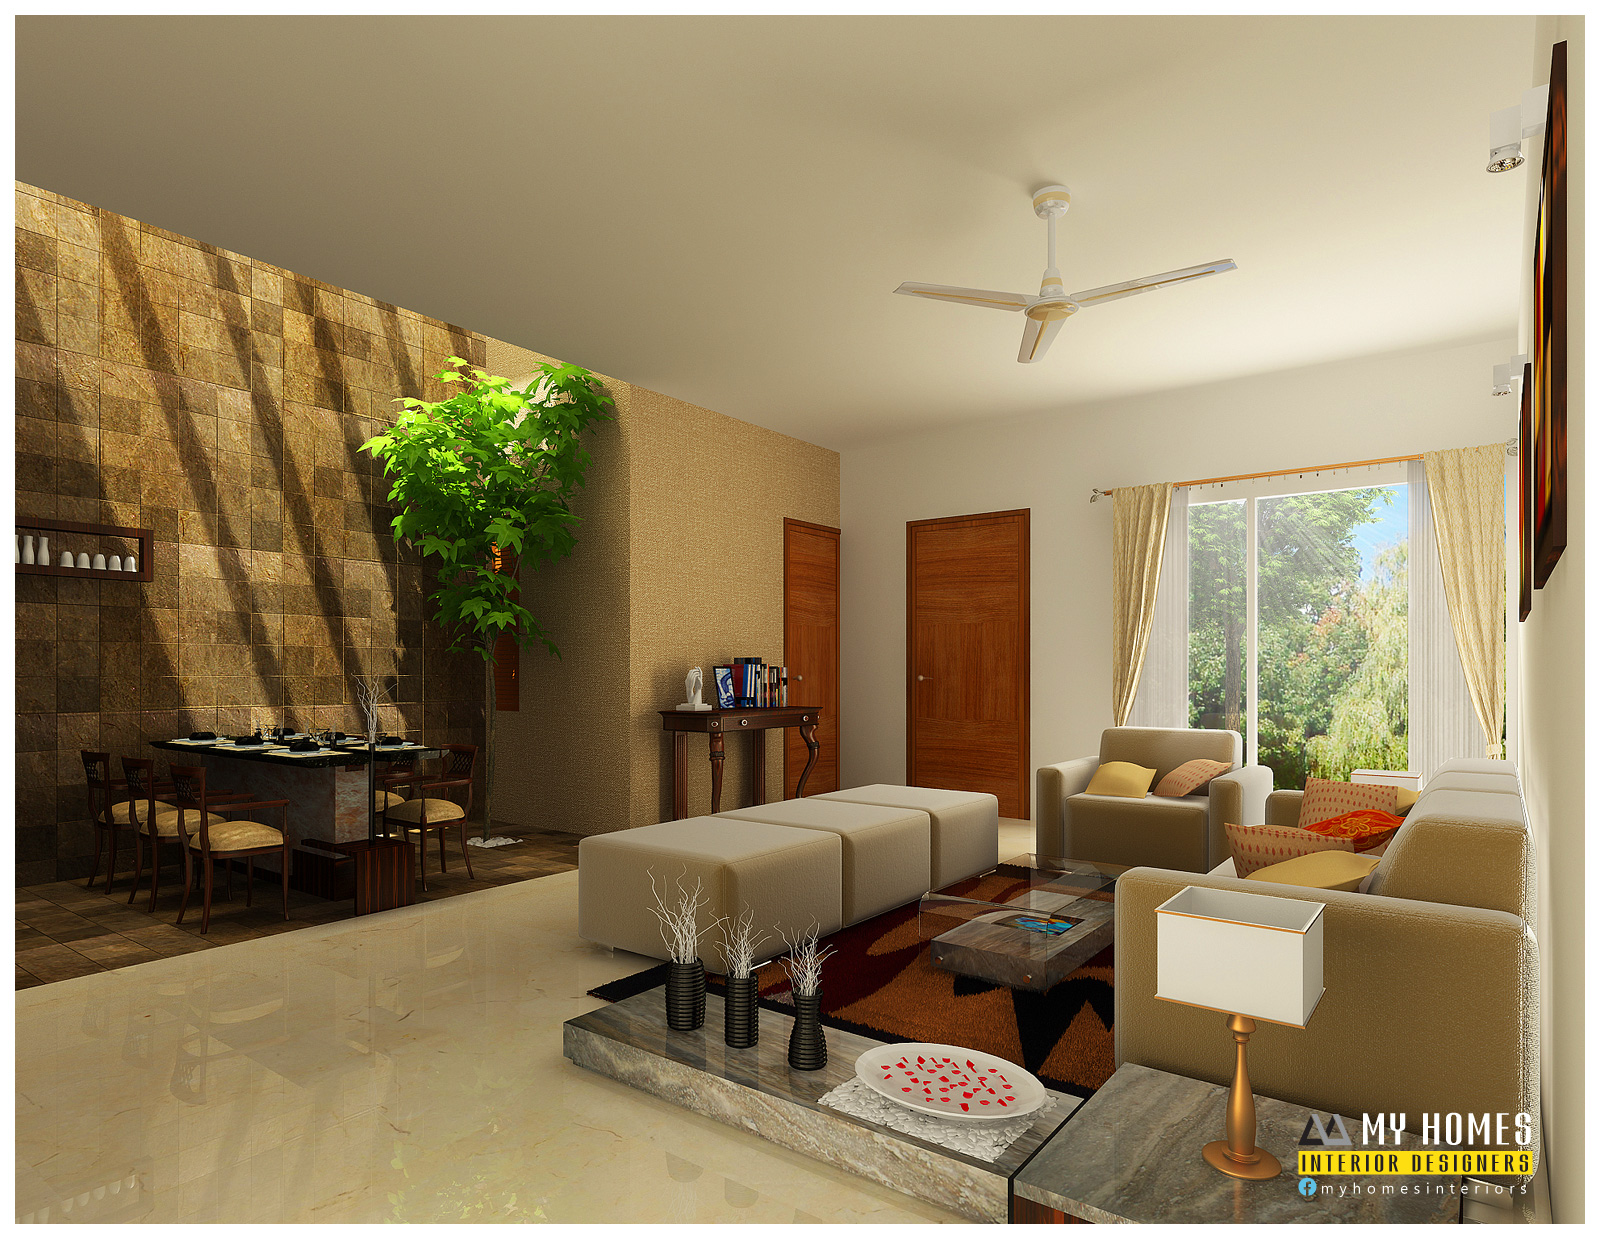 Interior Design Ideas From Designing Company Thrissur